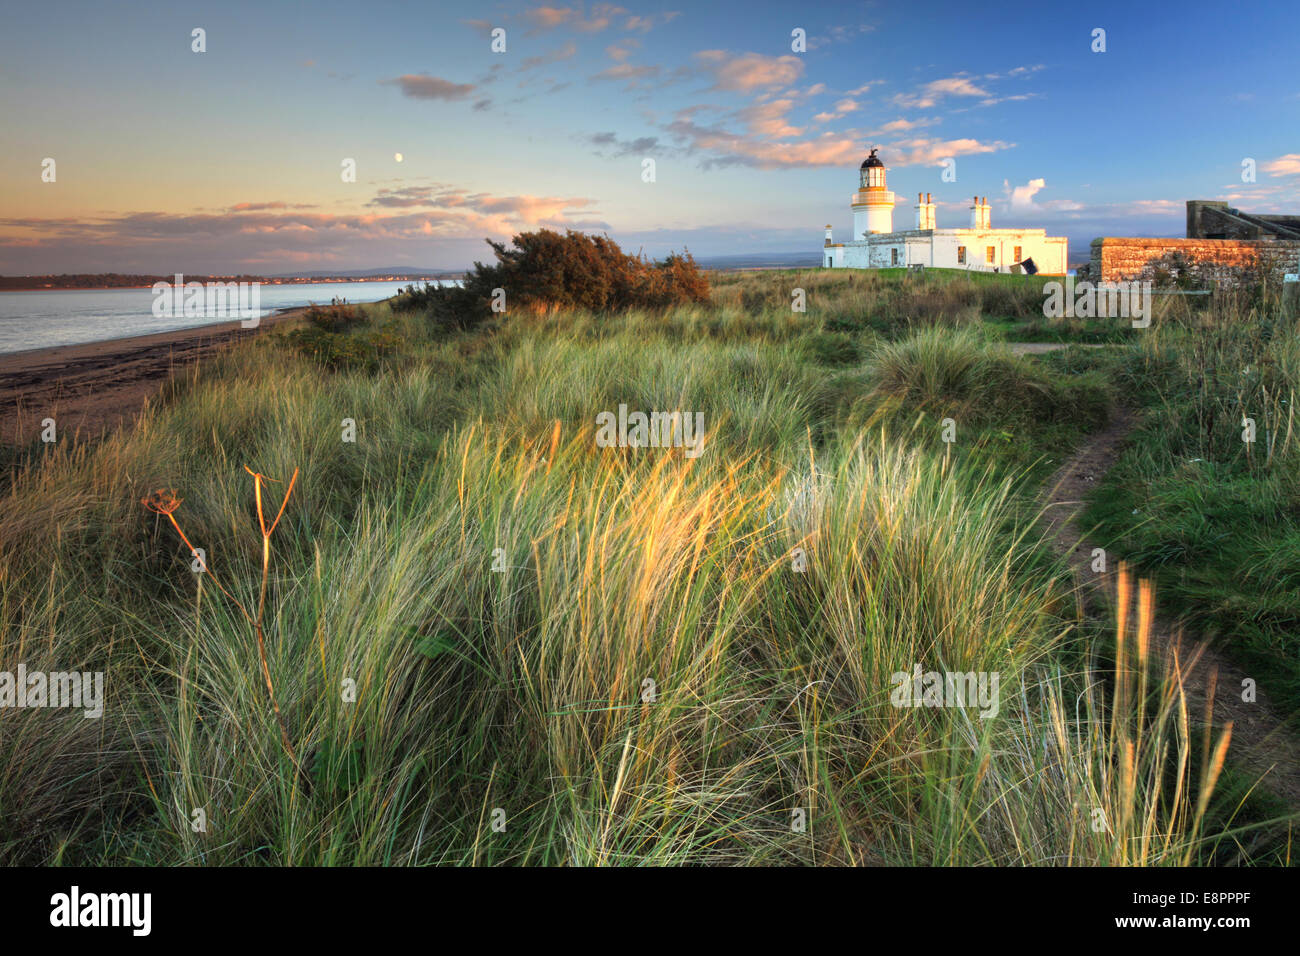 Chanonry Point Lighthouse on Black Isle in Scotland. - Stock Image